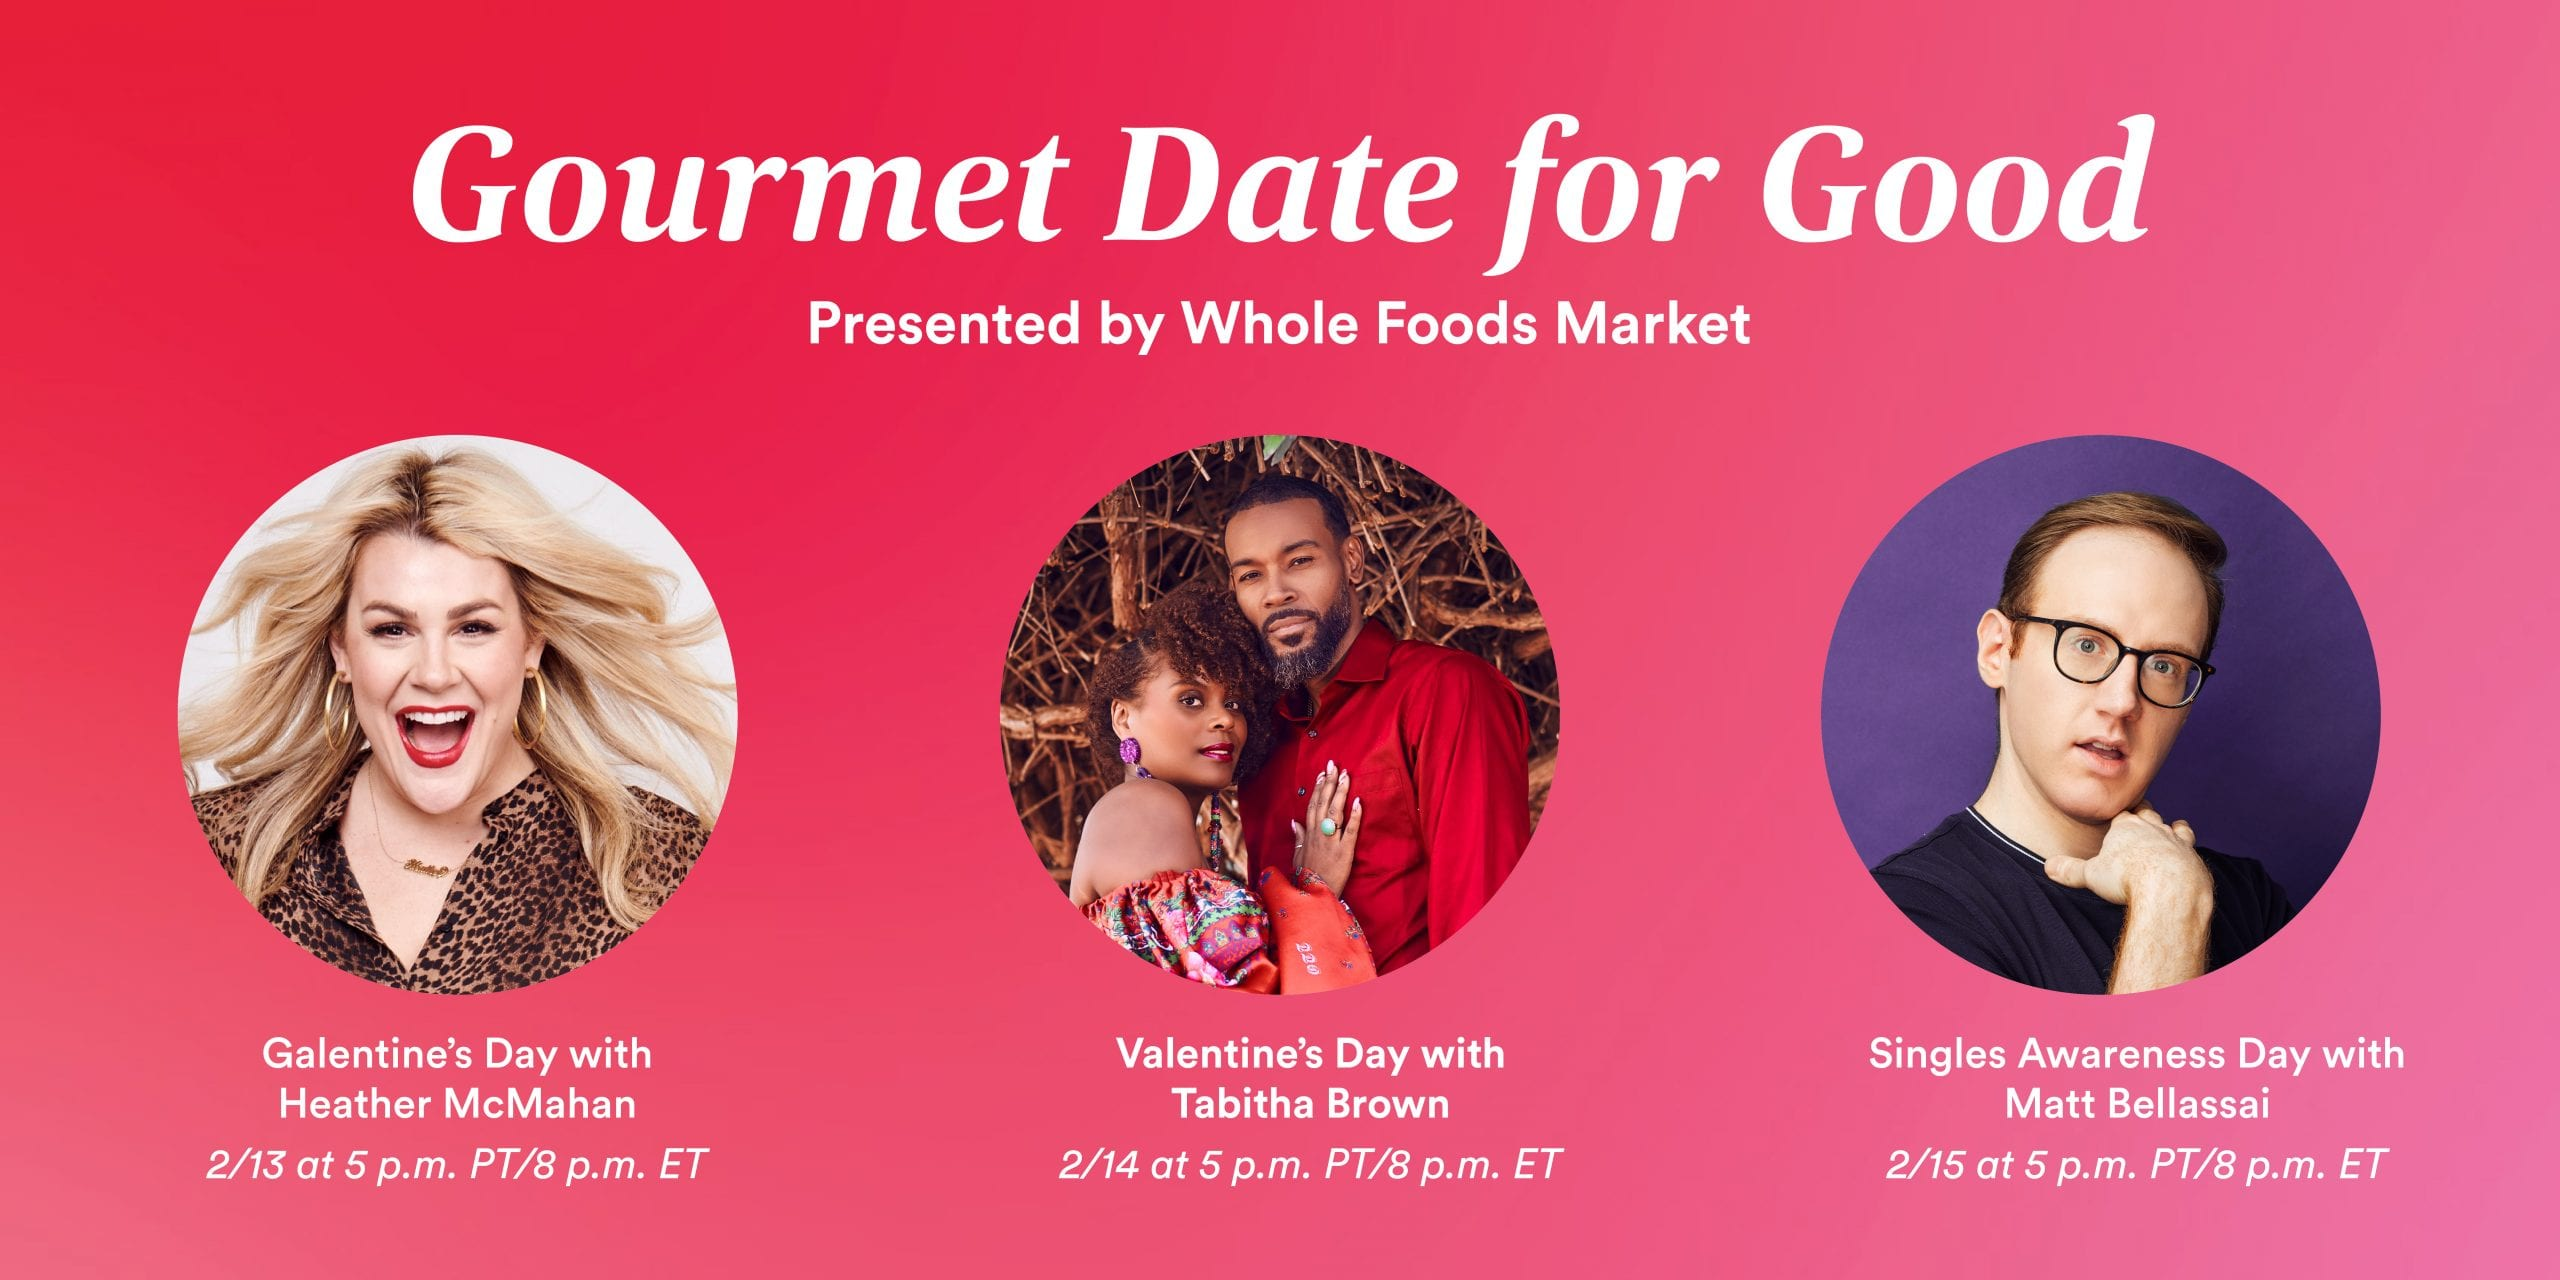 Whole Foods Market celebrates Valentine's Day weekend with 'Gourmet Date for Good' live virtual cooking experiences